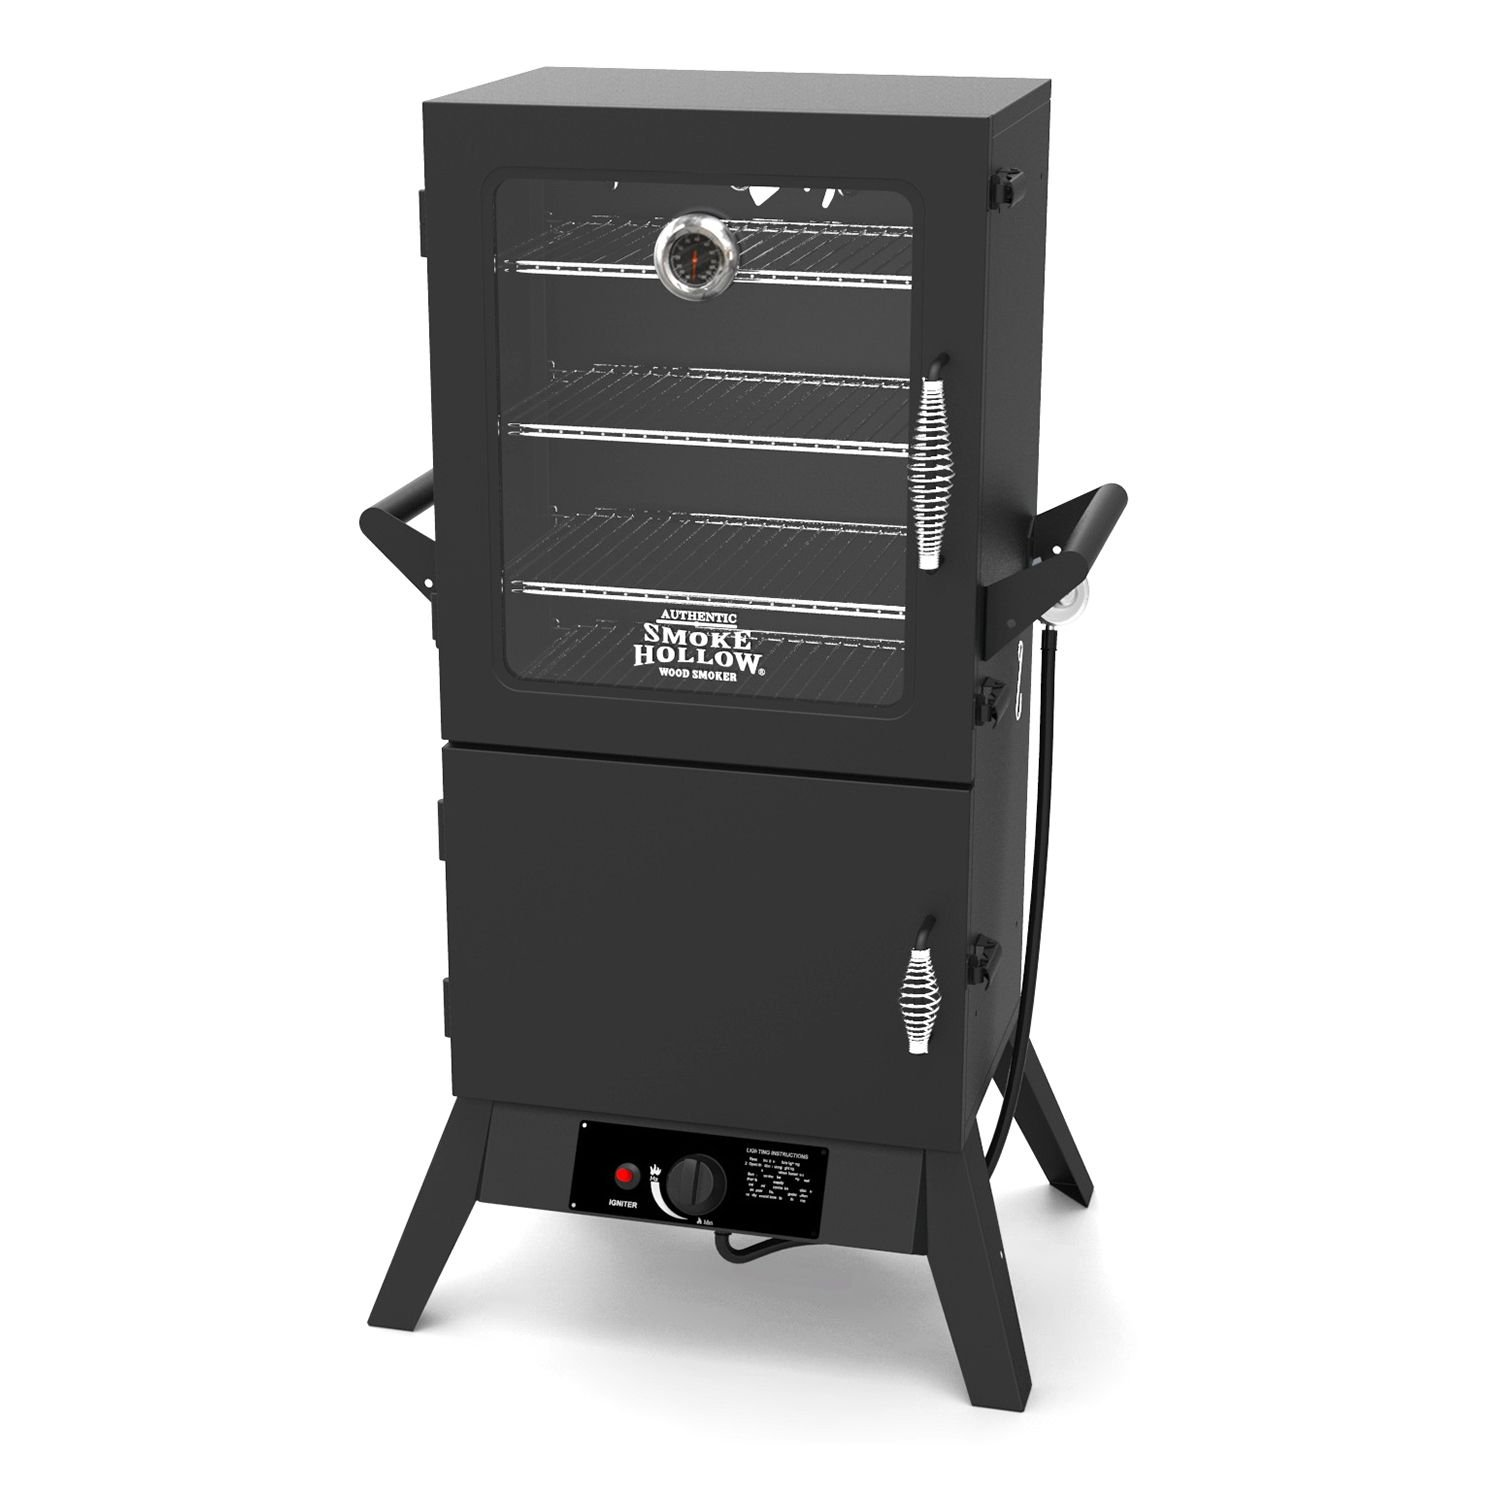 Smoke Hollow 38205GW - best propane smoker